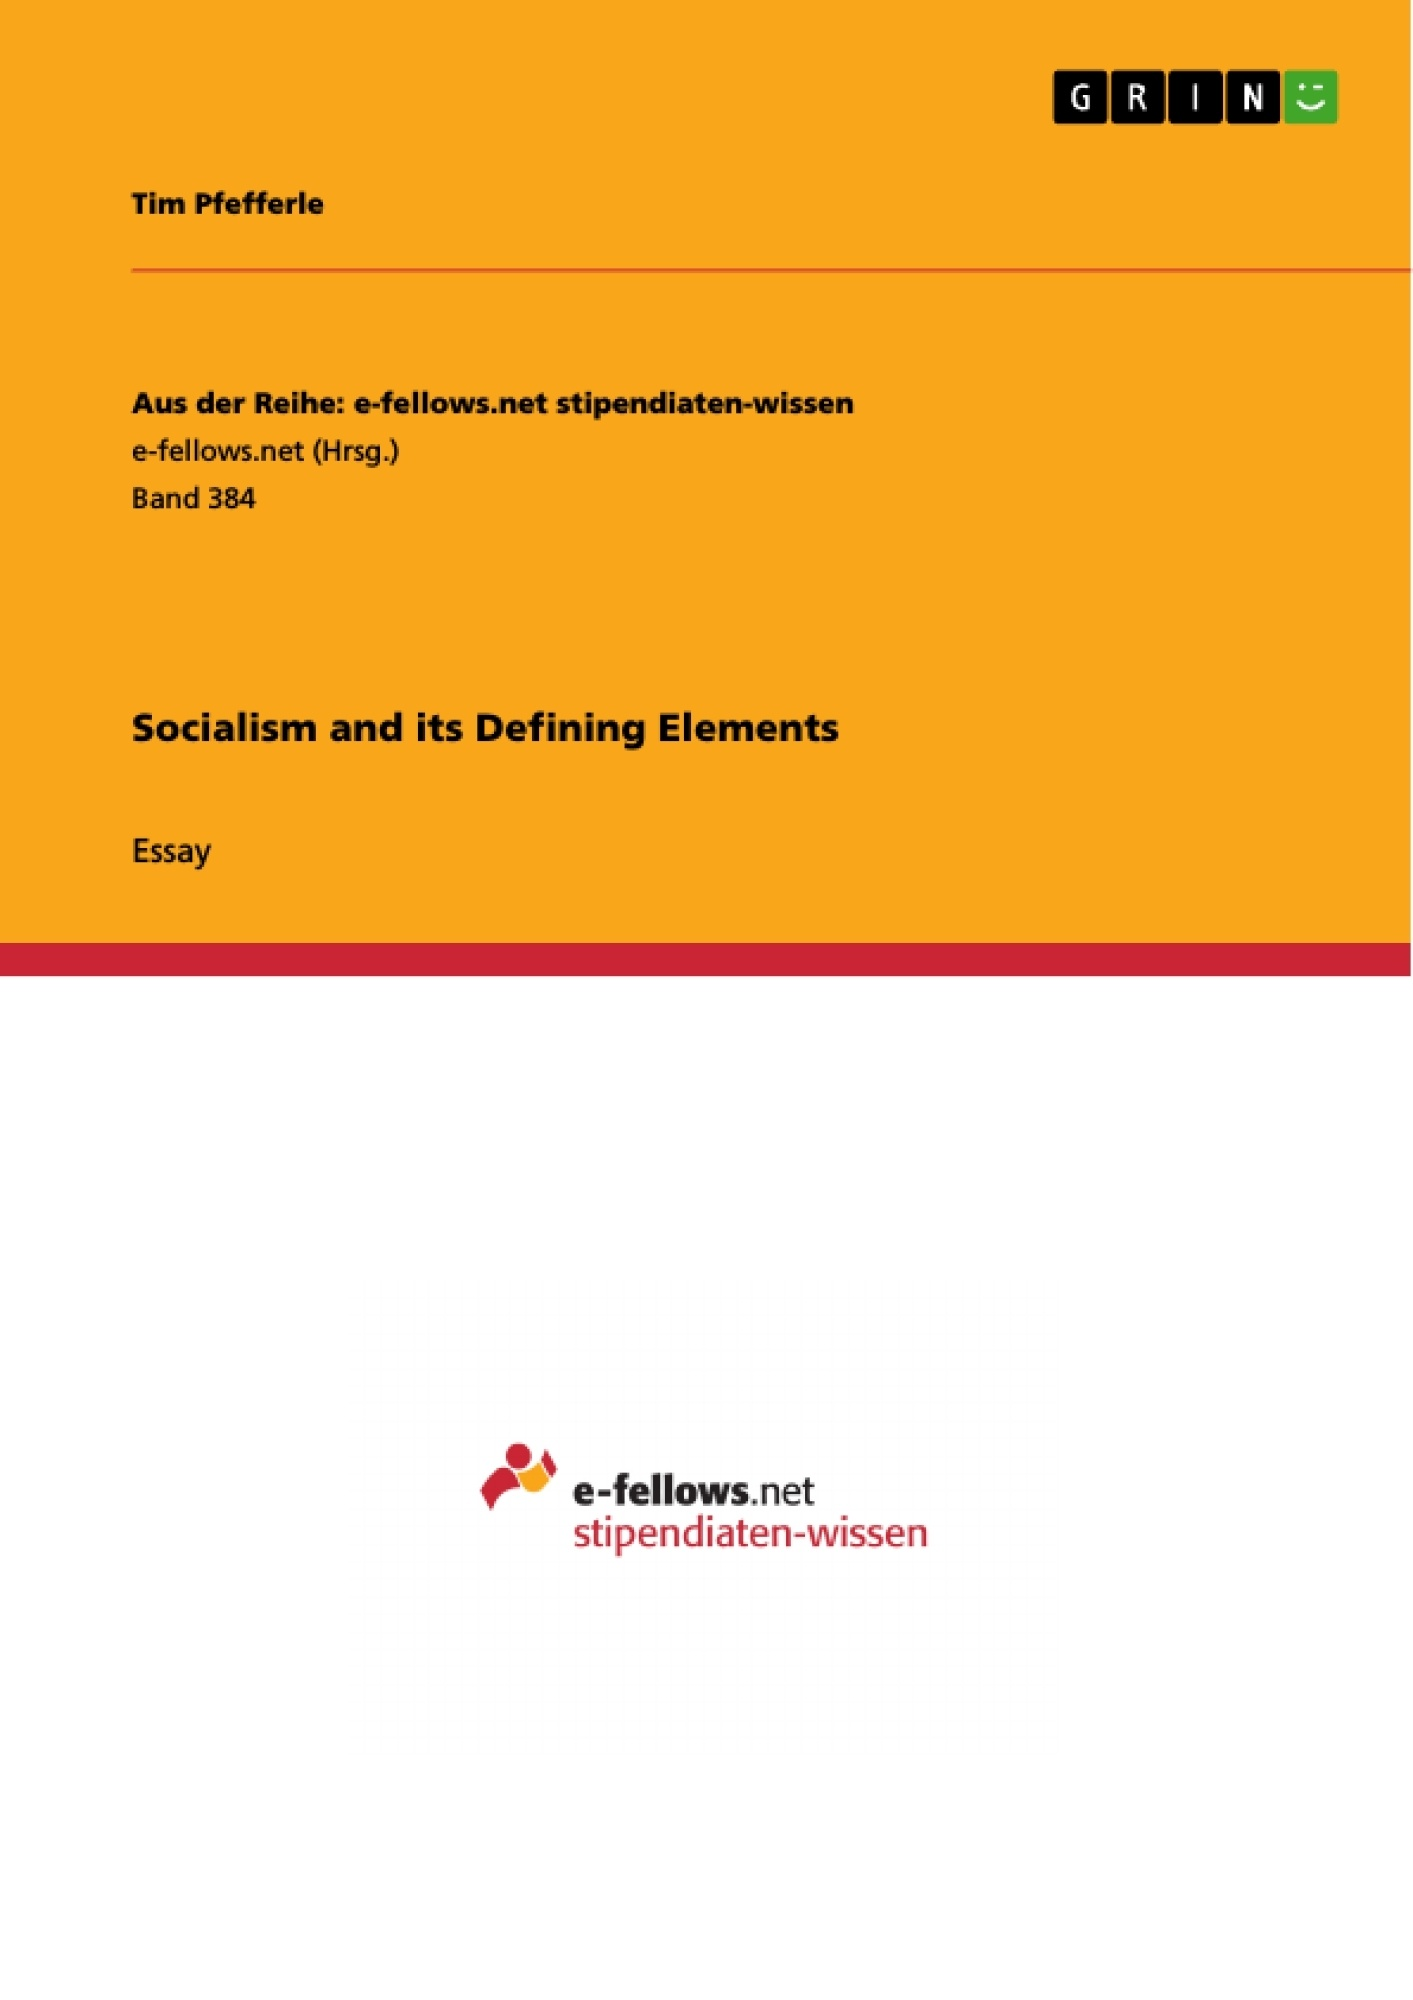 Title: Socialism and its Defining Elements